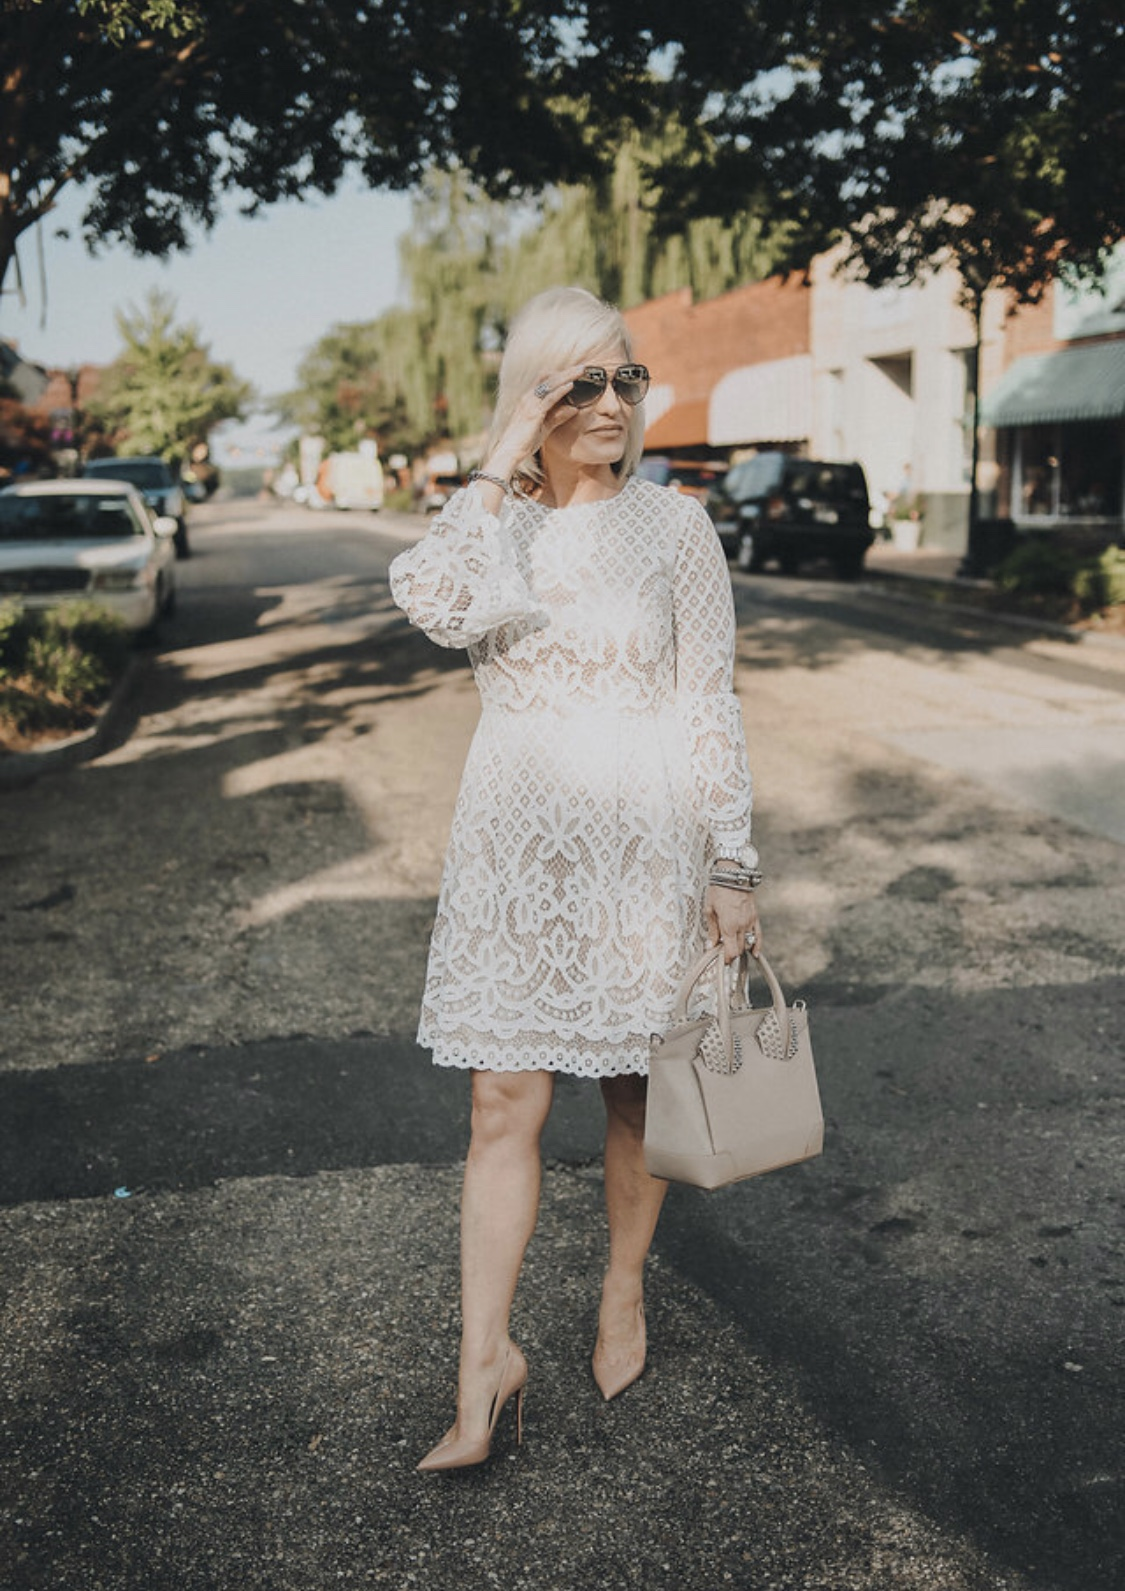 Styled here for an all-neutral look. Shoes  here  and similar style  here . Handbag similar style  here .  Sunglasses  here  and similar style  here .